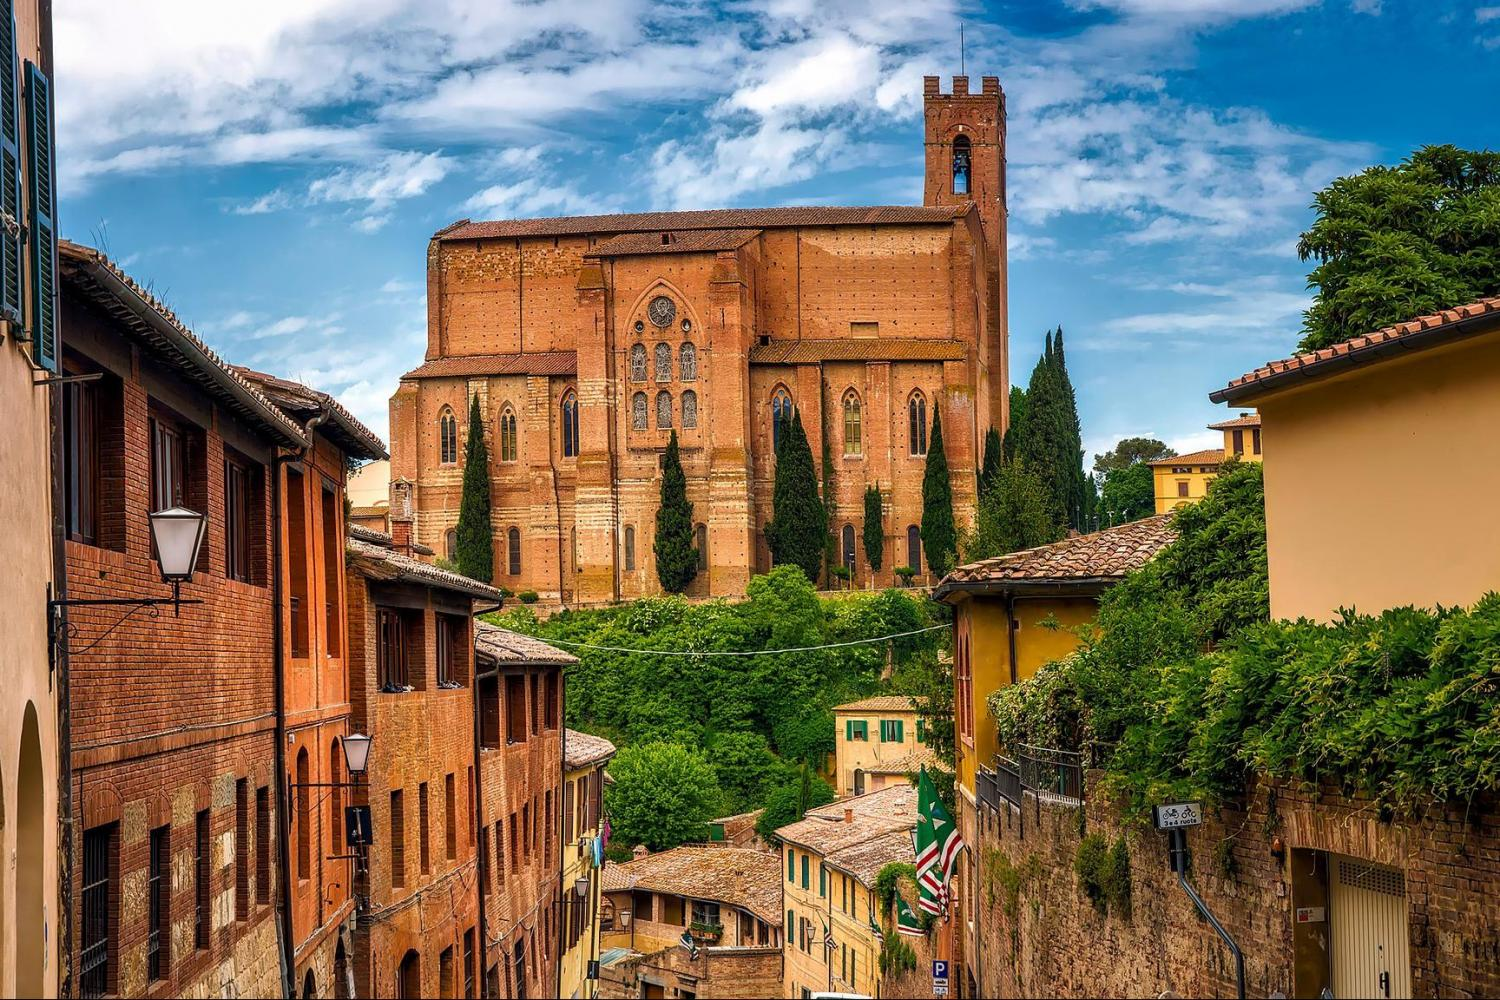 Siena & San Gimignano Tour With Chianti Wine Tasting From Florence